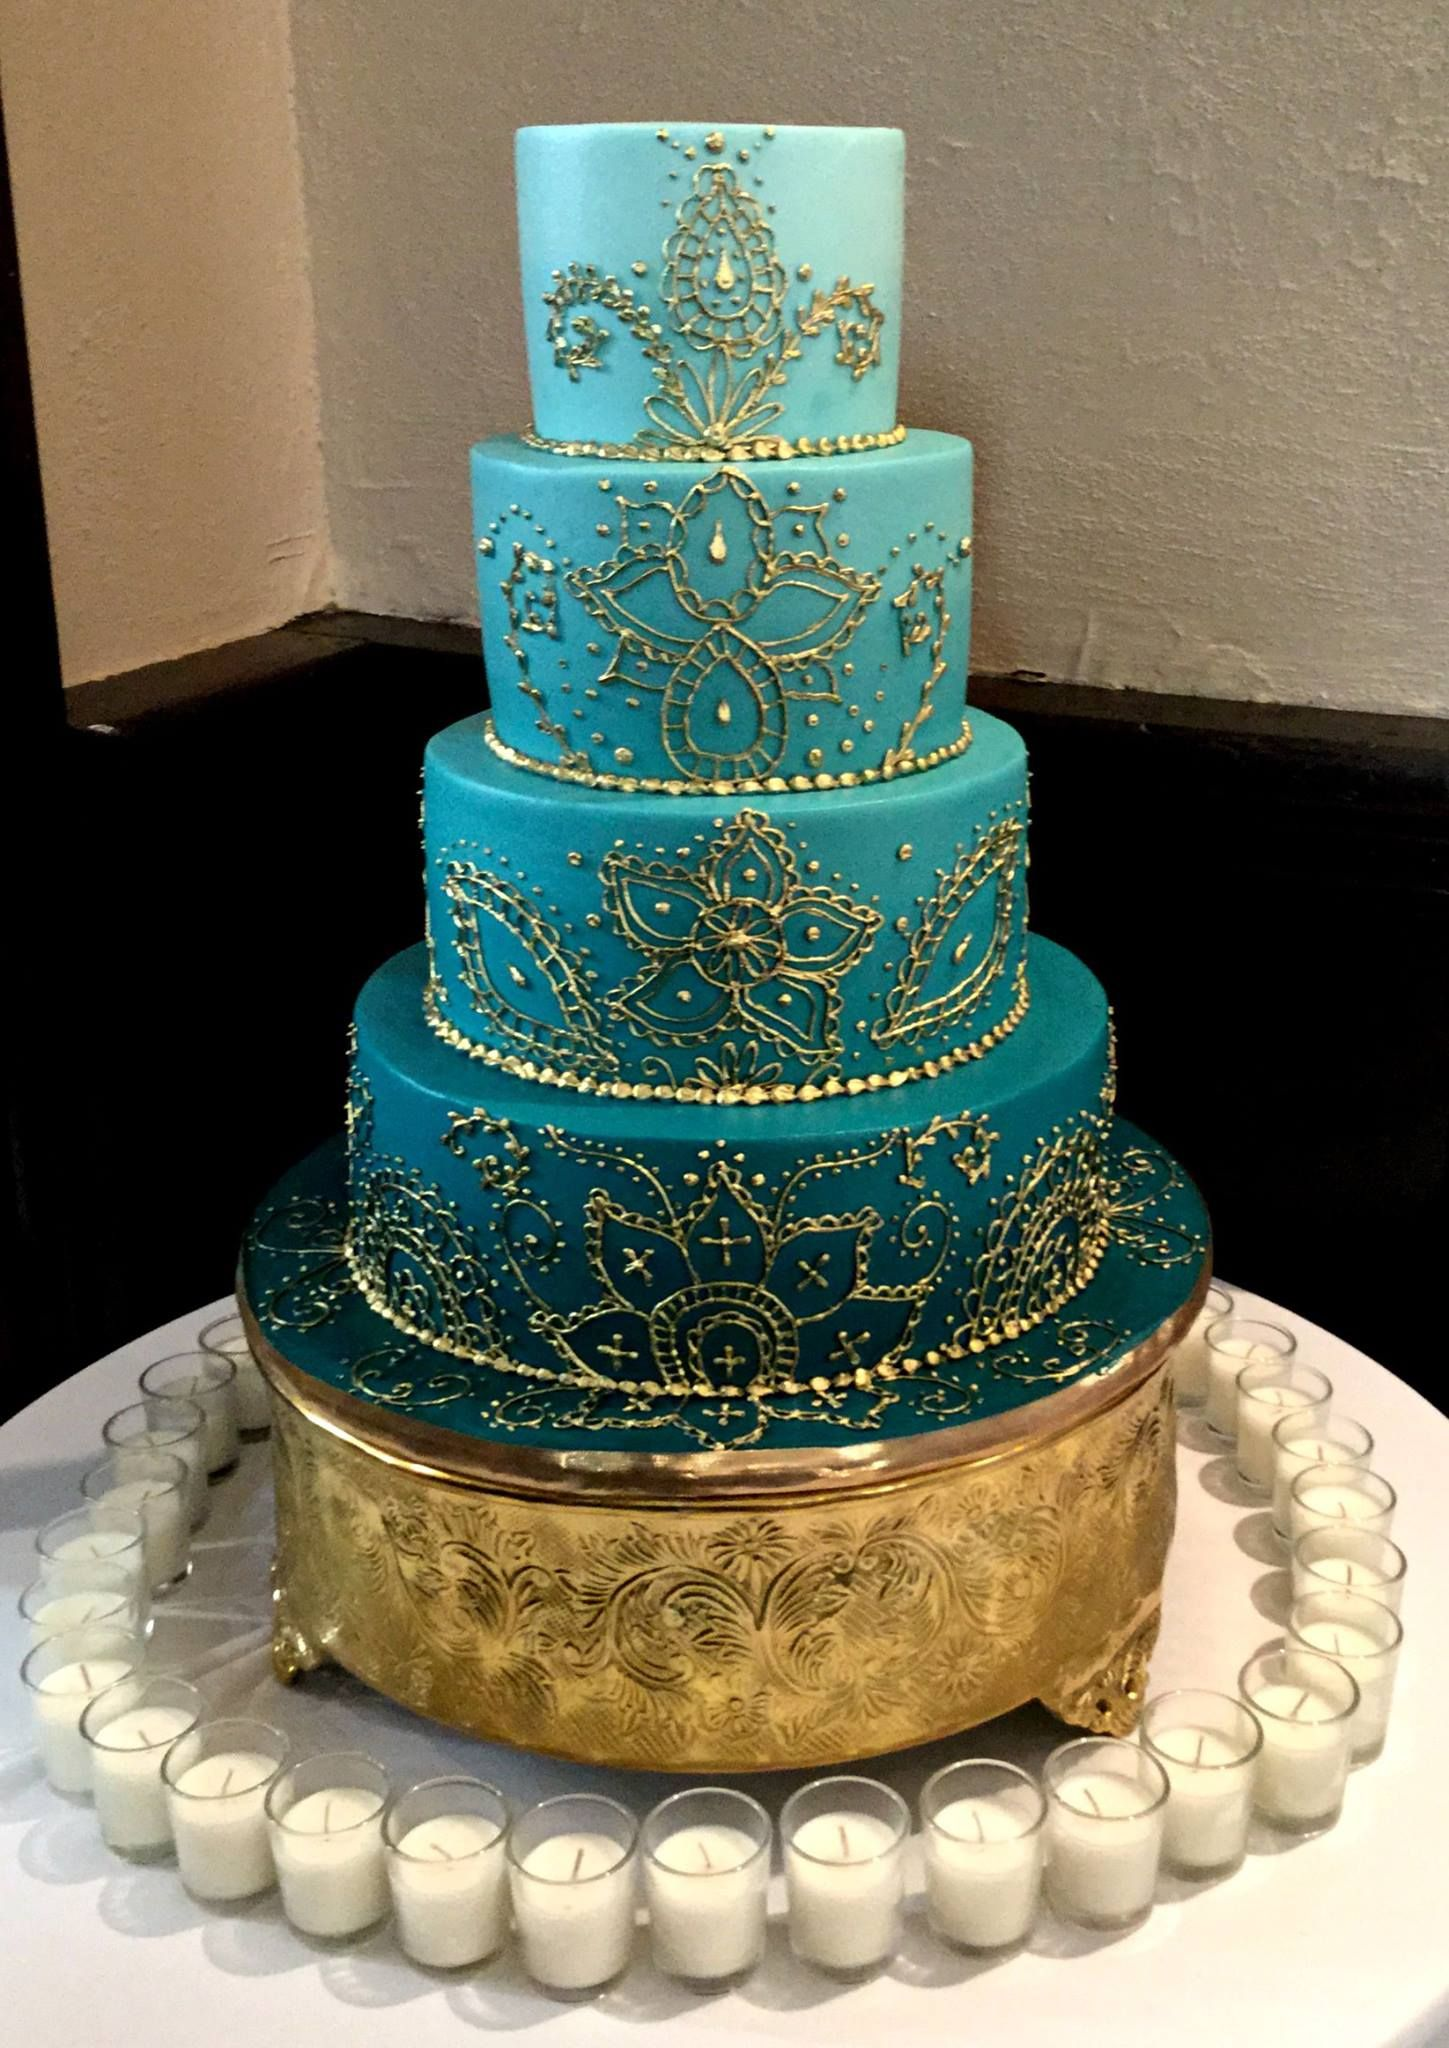 Pin By Keela Yoder On Cake Inspration Cool Wedding Cakes